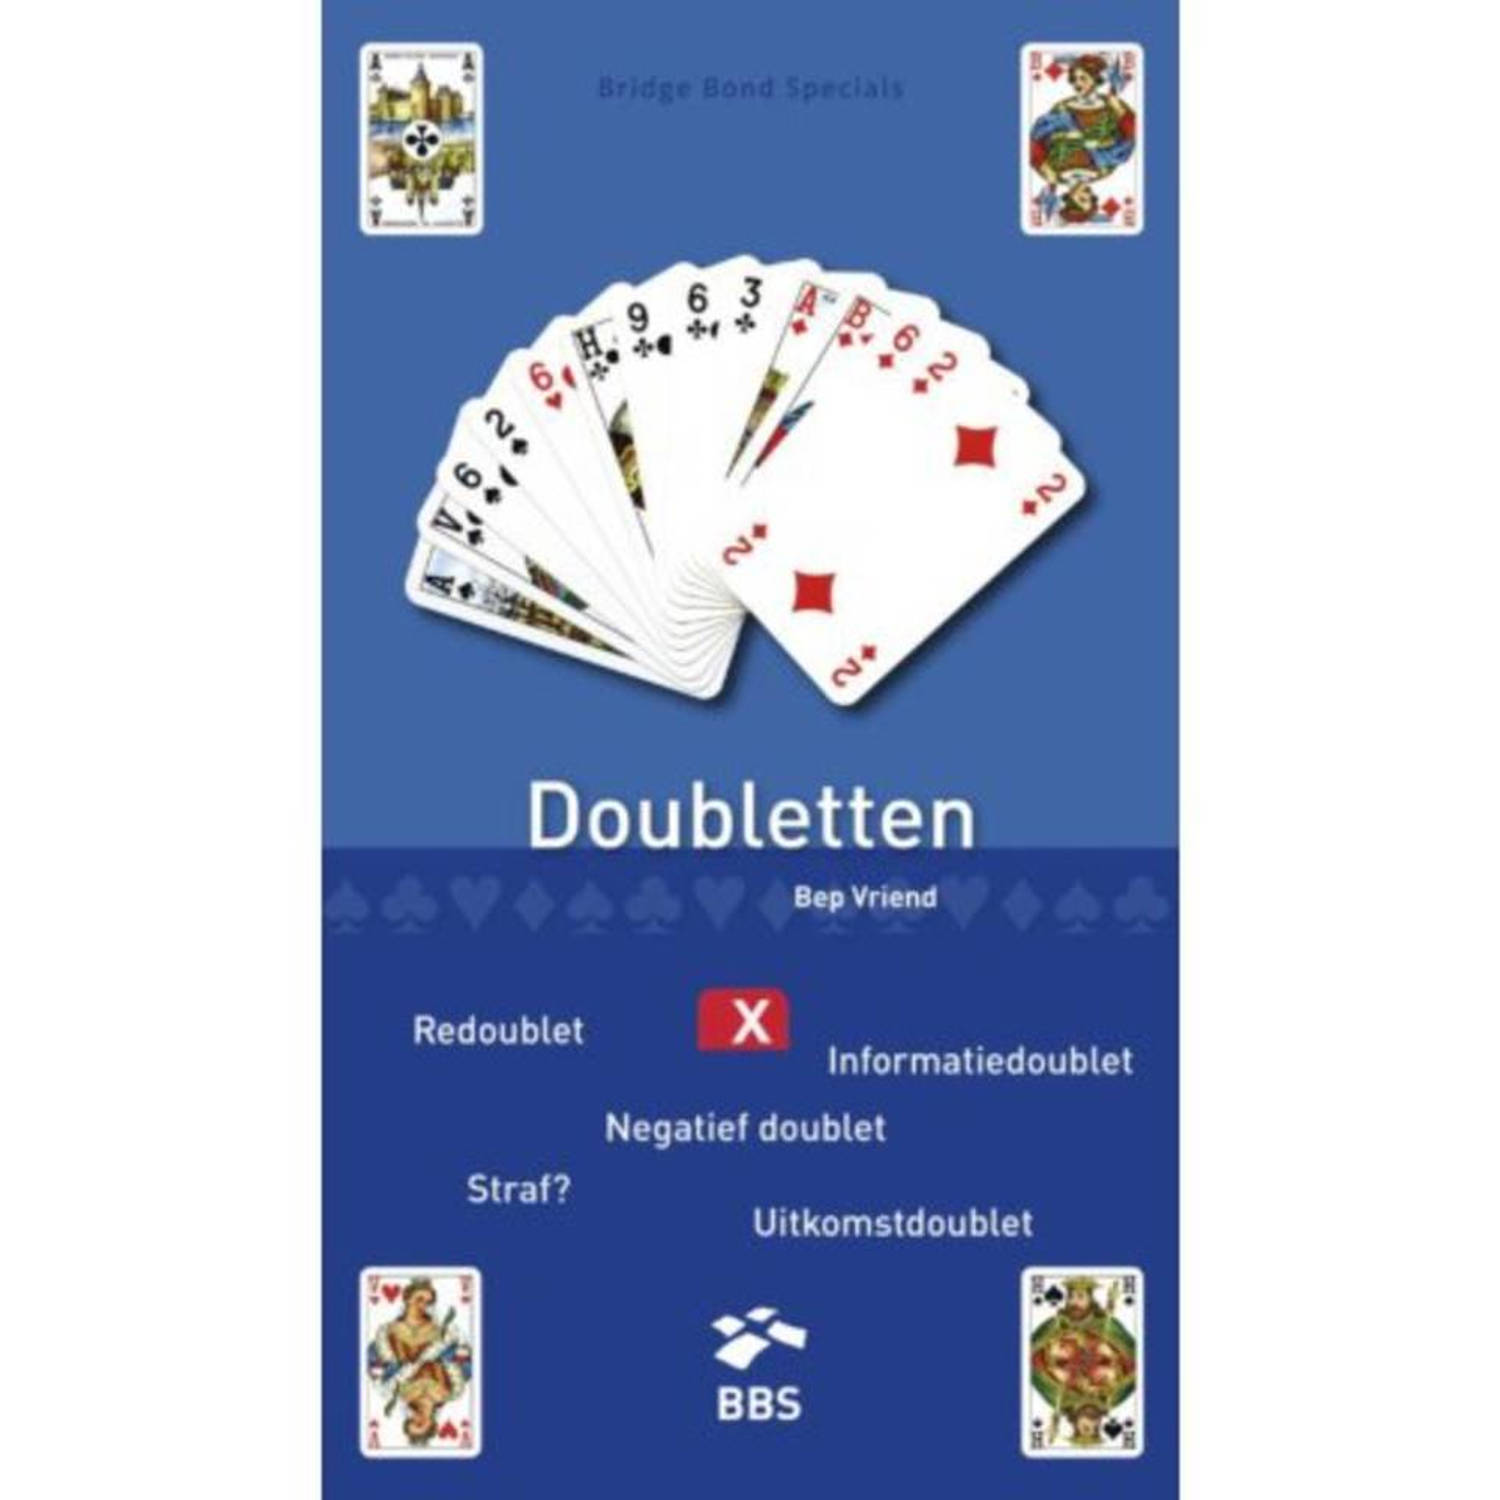 Doubletten - Bridge Bond Specials